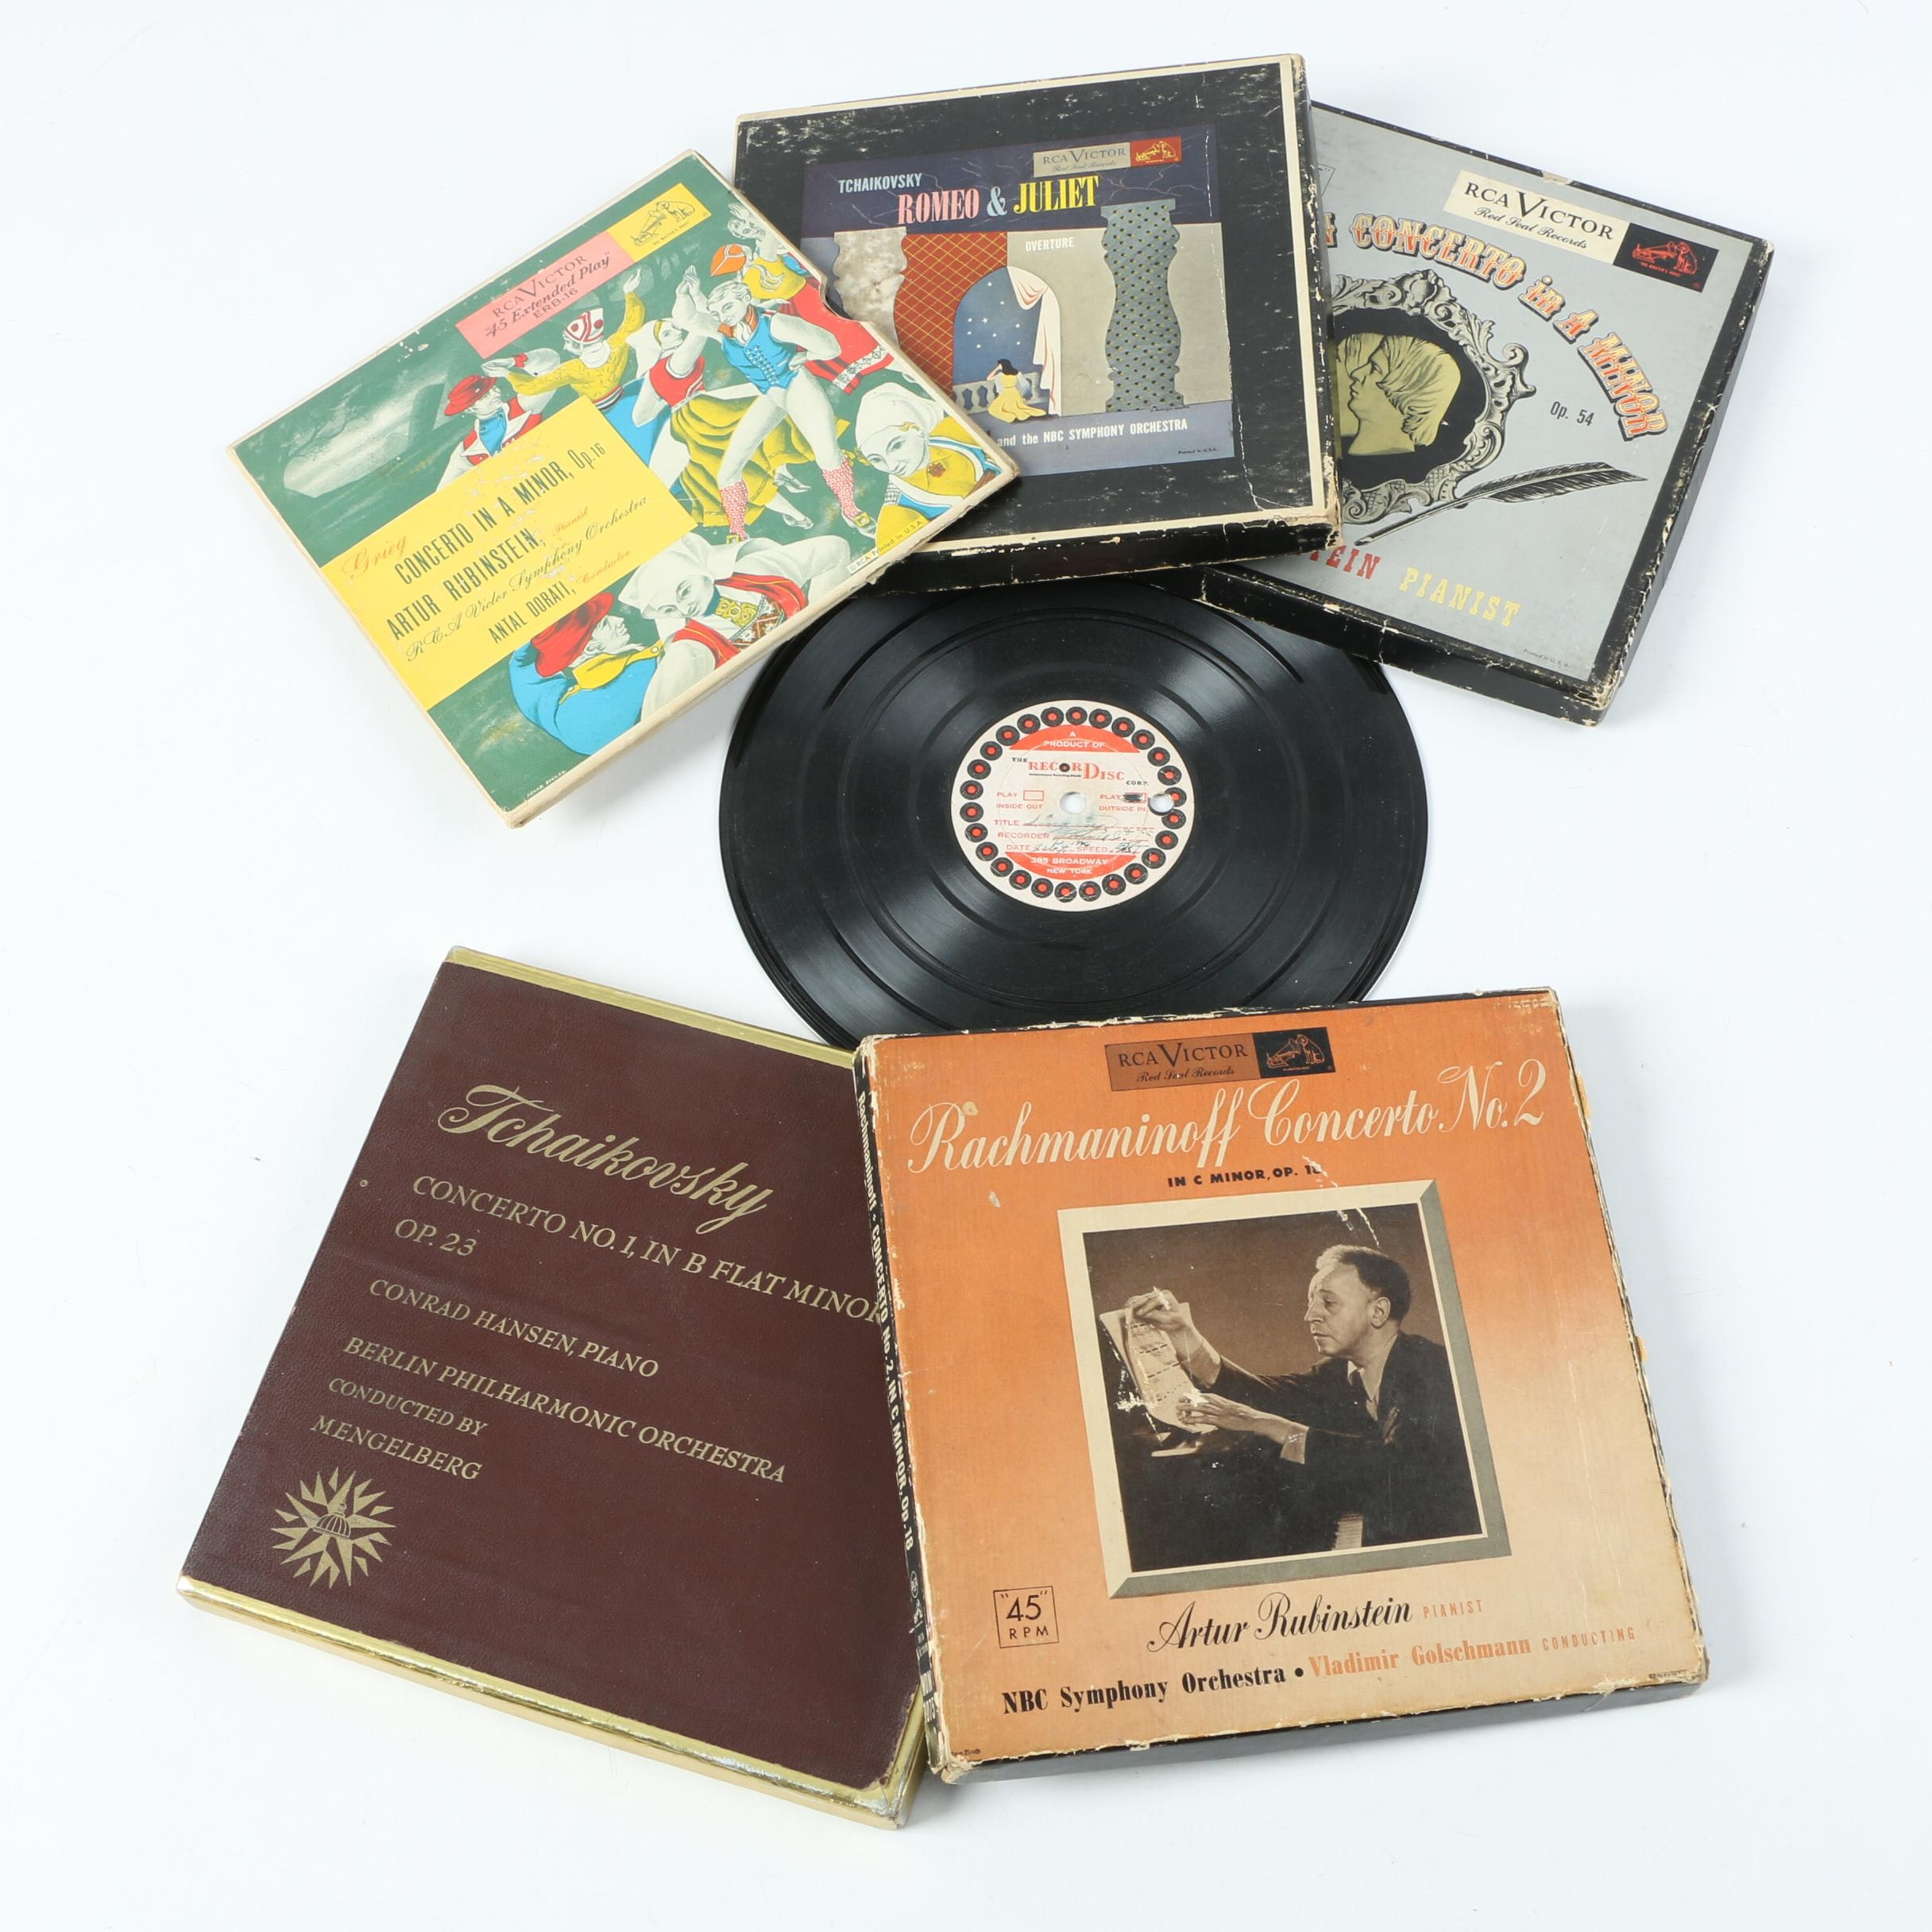 Vintage RCA Victor Classical Records Including Rachmaninoff and Tchaikovsky